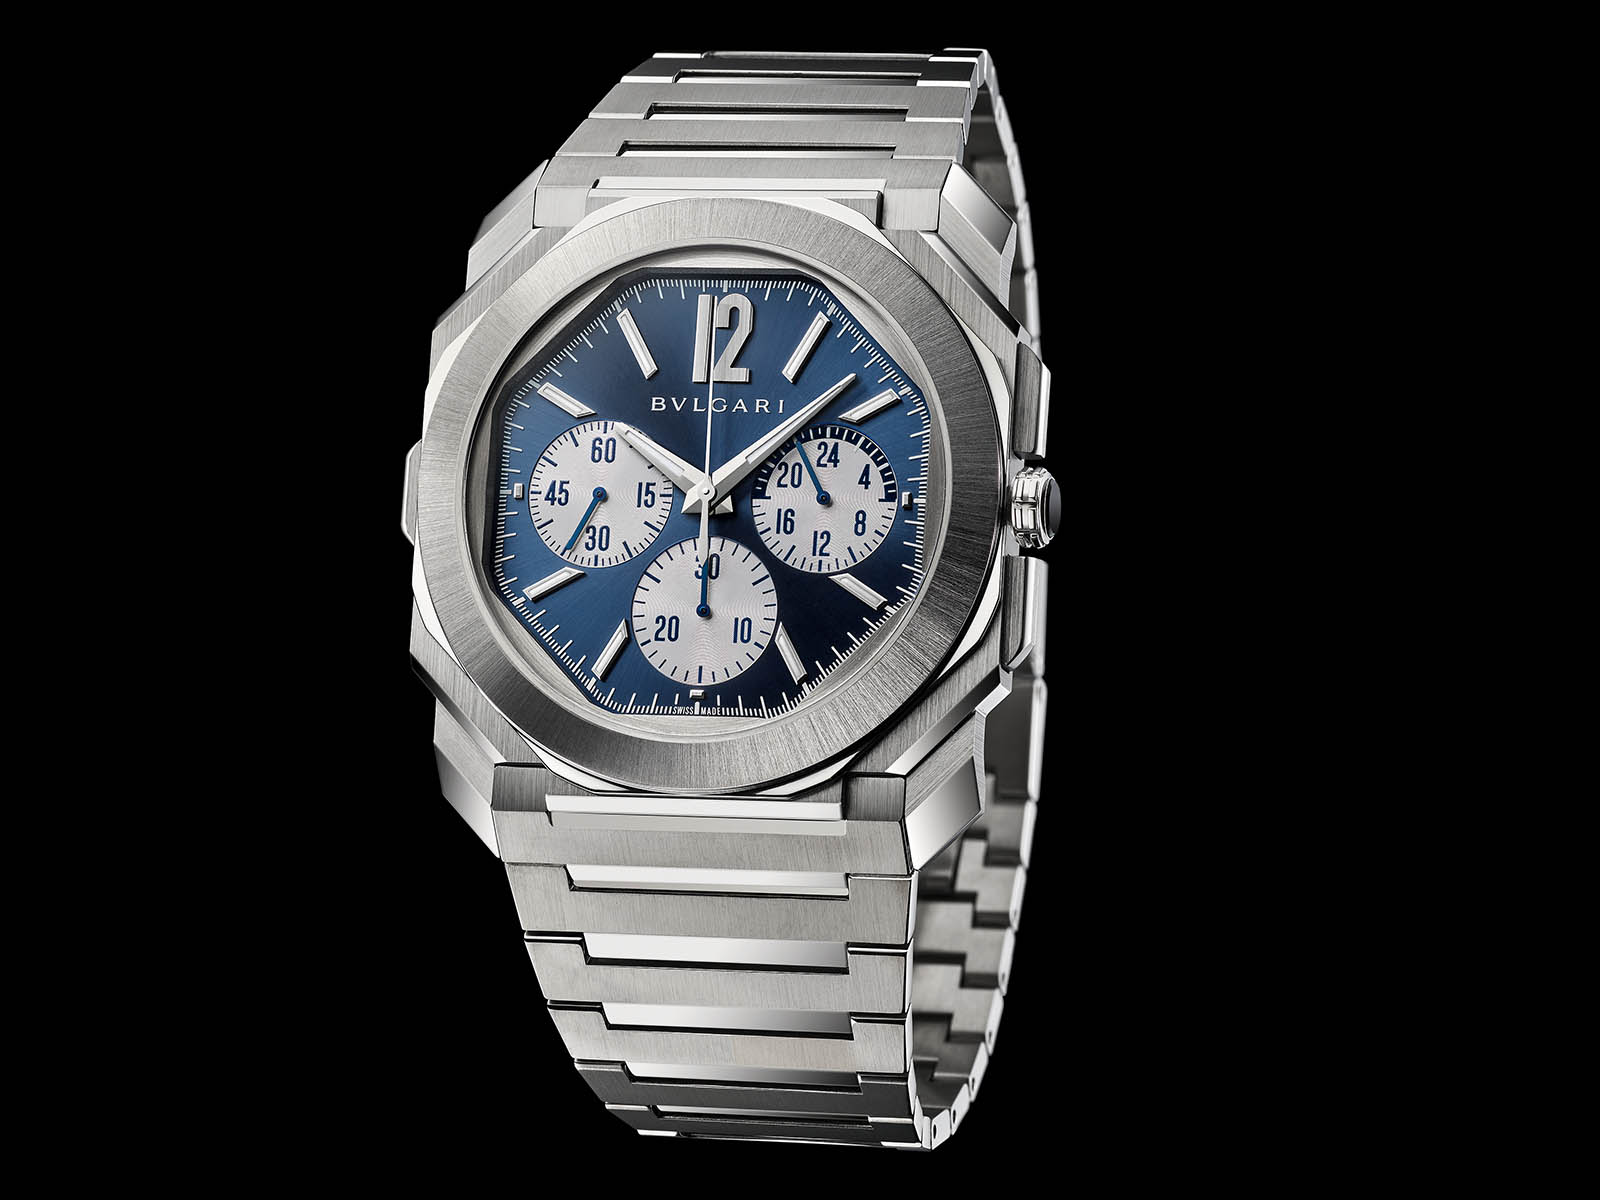 bulgari-octo-finissimo-s-chronograph-gmt-lvmh-2021-novelties-1.jpg